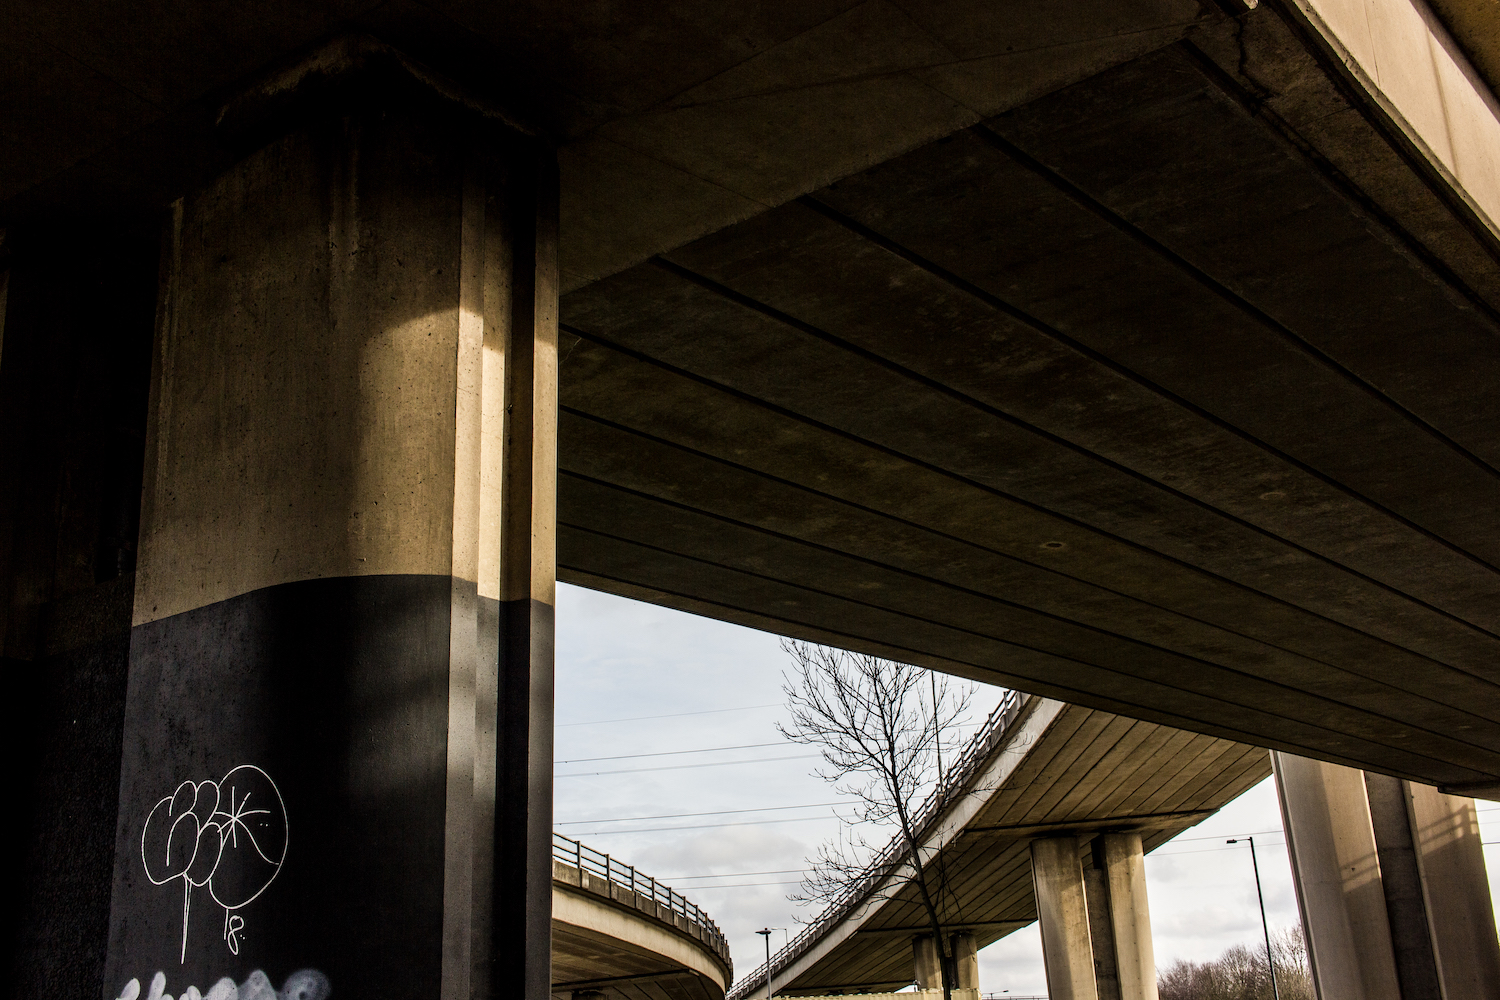 Professional Photography Concrete Roundabout In South Woodford North East London With Three Overpasses Graffiti And Pillars